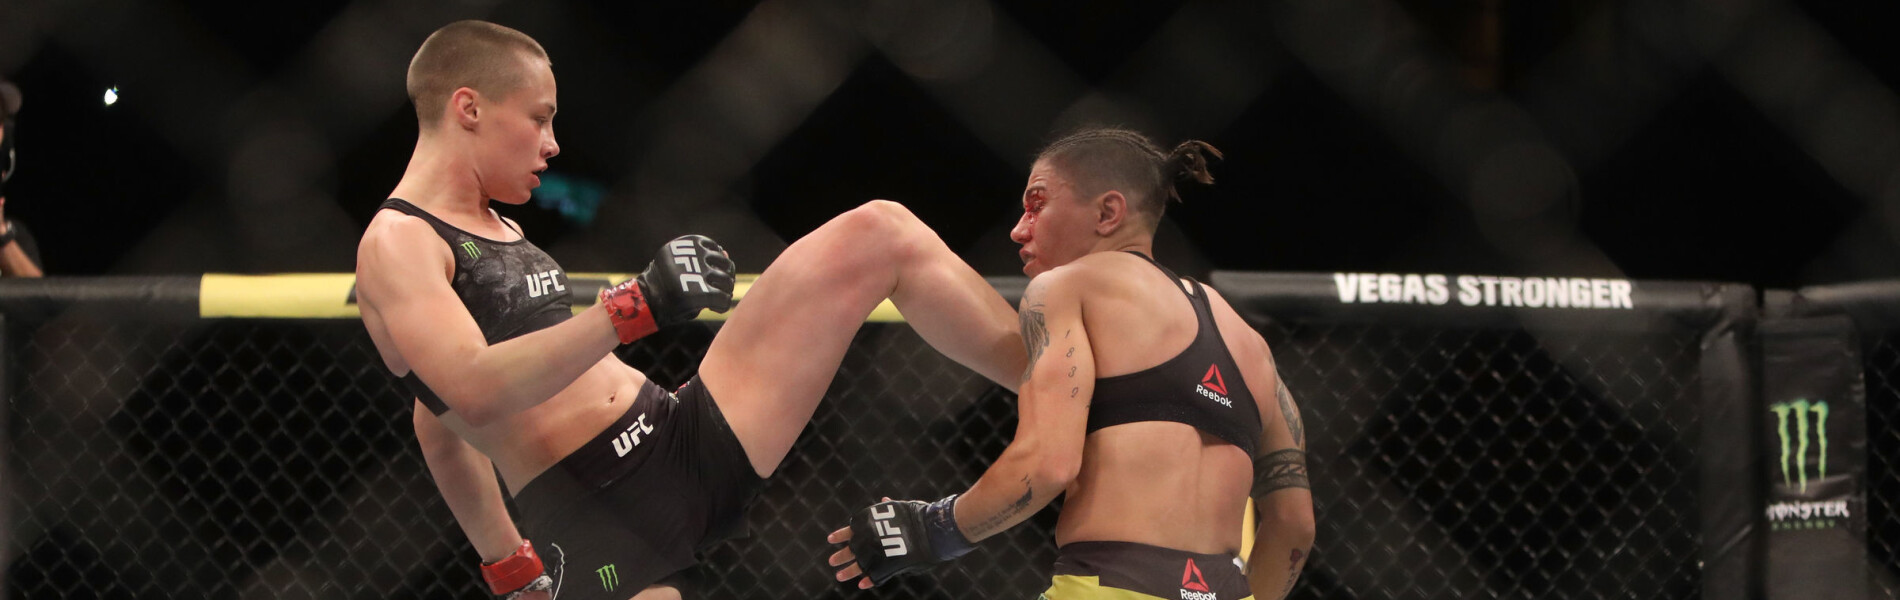 Rose Namajunas battles Jessica Andrade of Brazil during the UFC 237 event at Jeunesse Arena on May 11, 2019 in Rio de Janeiro, Brazil.